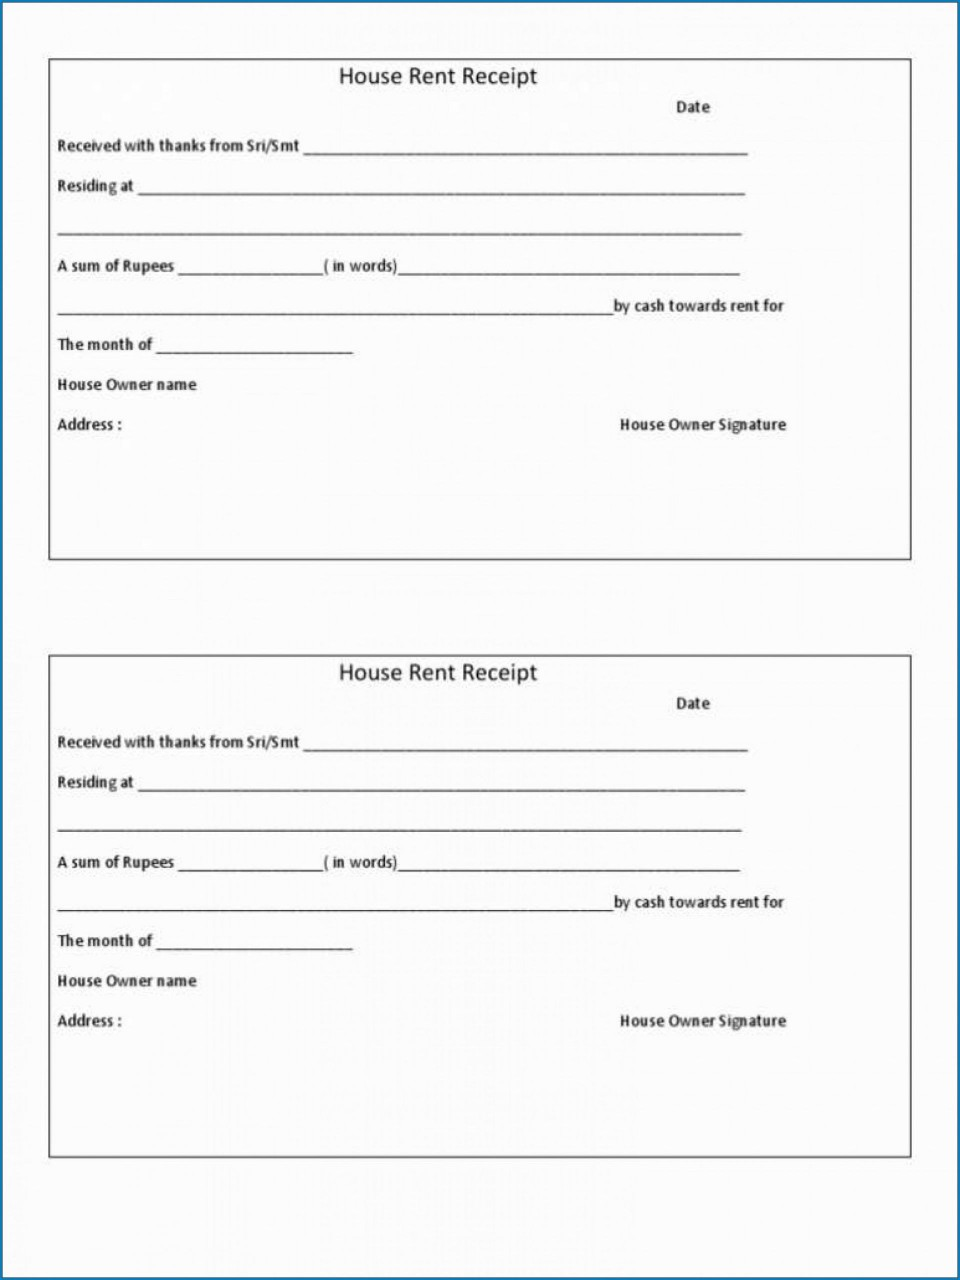 009 Magnificent Rent Receipt Sample Doc Design  Format Free Download Word India960